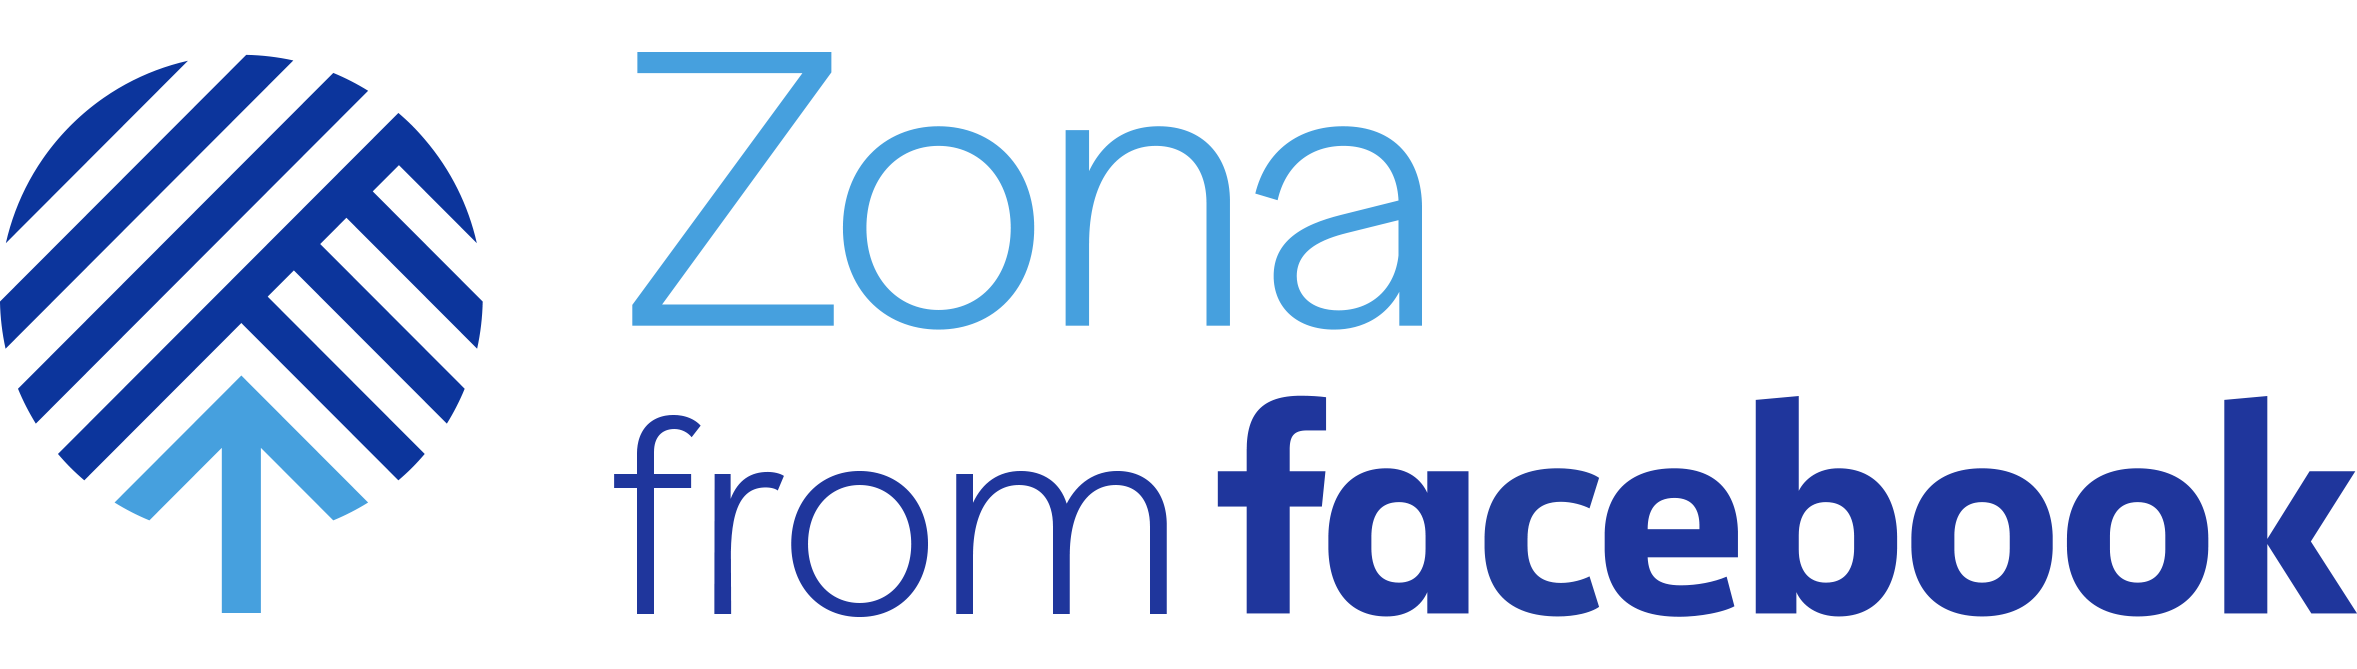 Logotipo de Zona from Facebook.